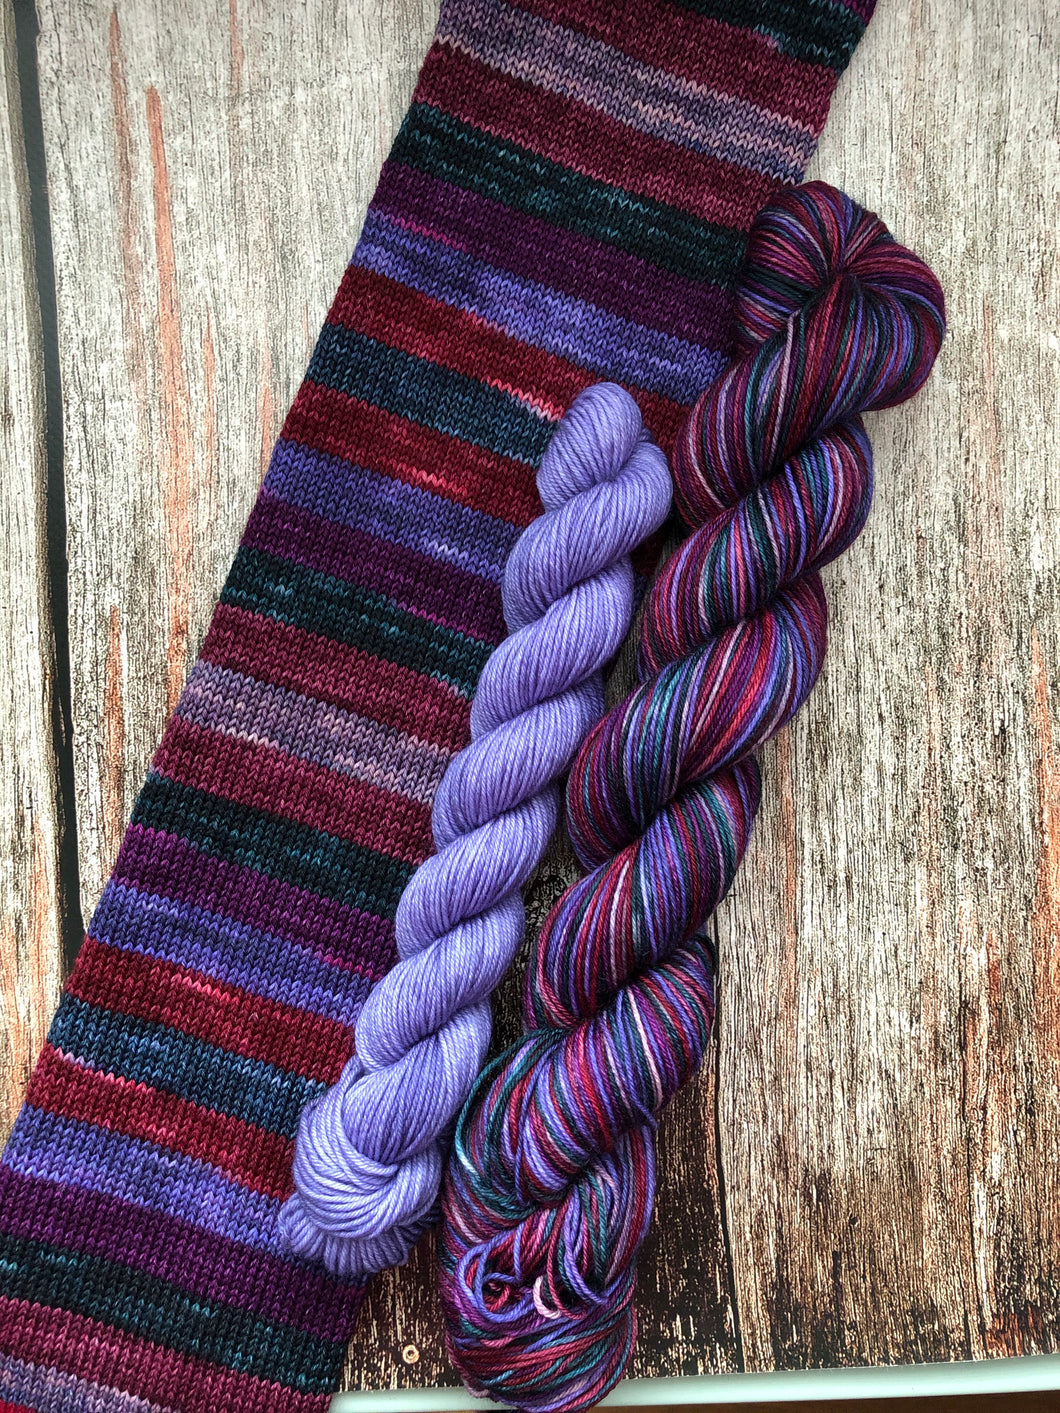 Sojourn Self-Striping Sock - Mad Madam Mim